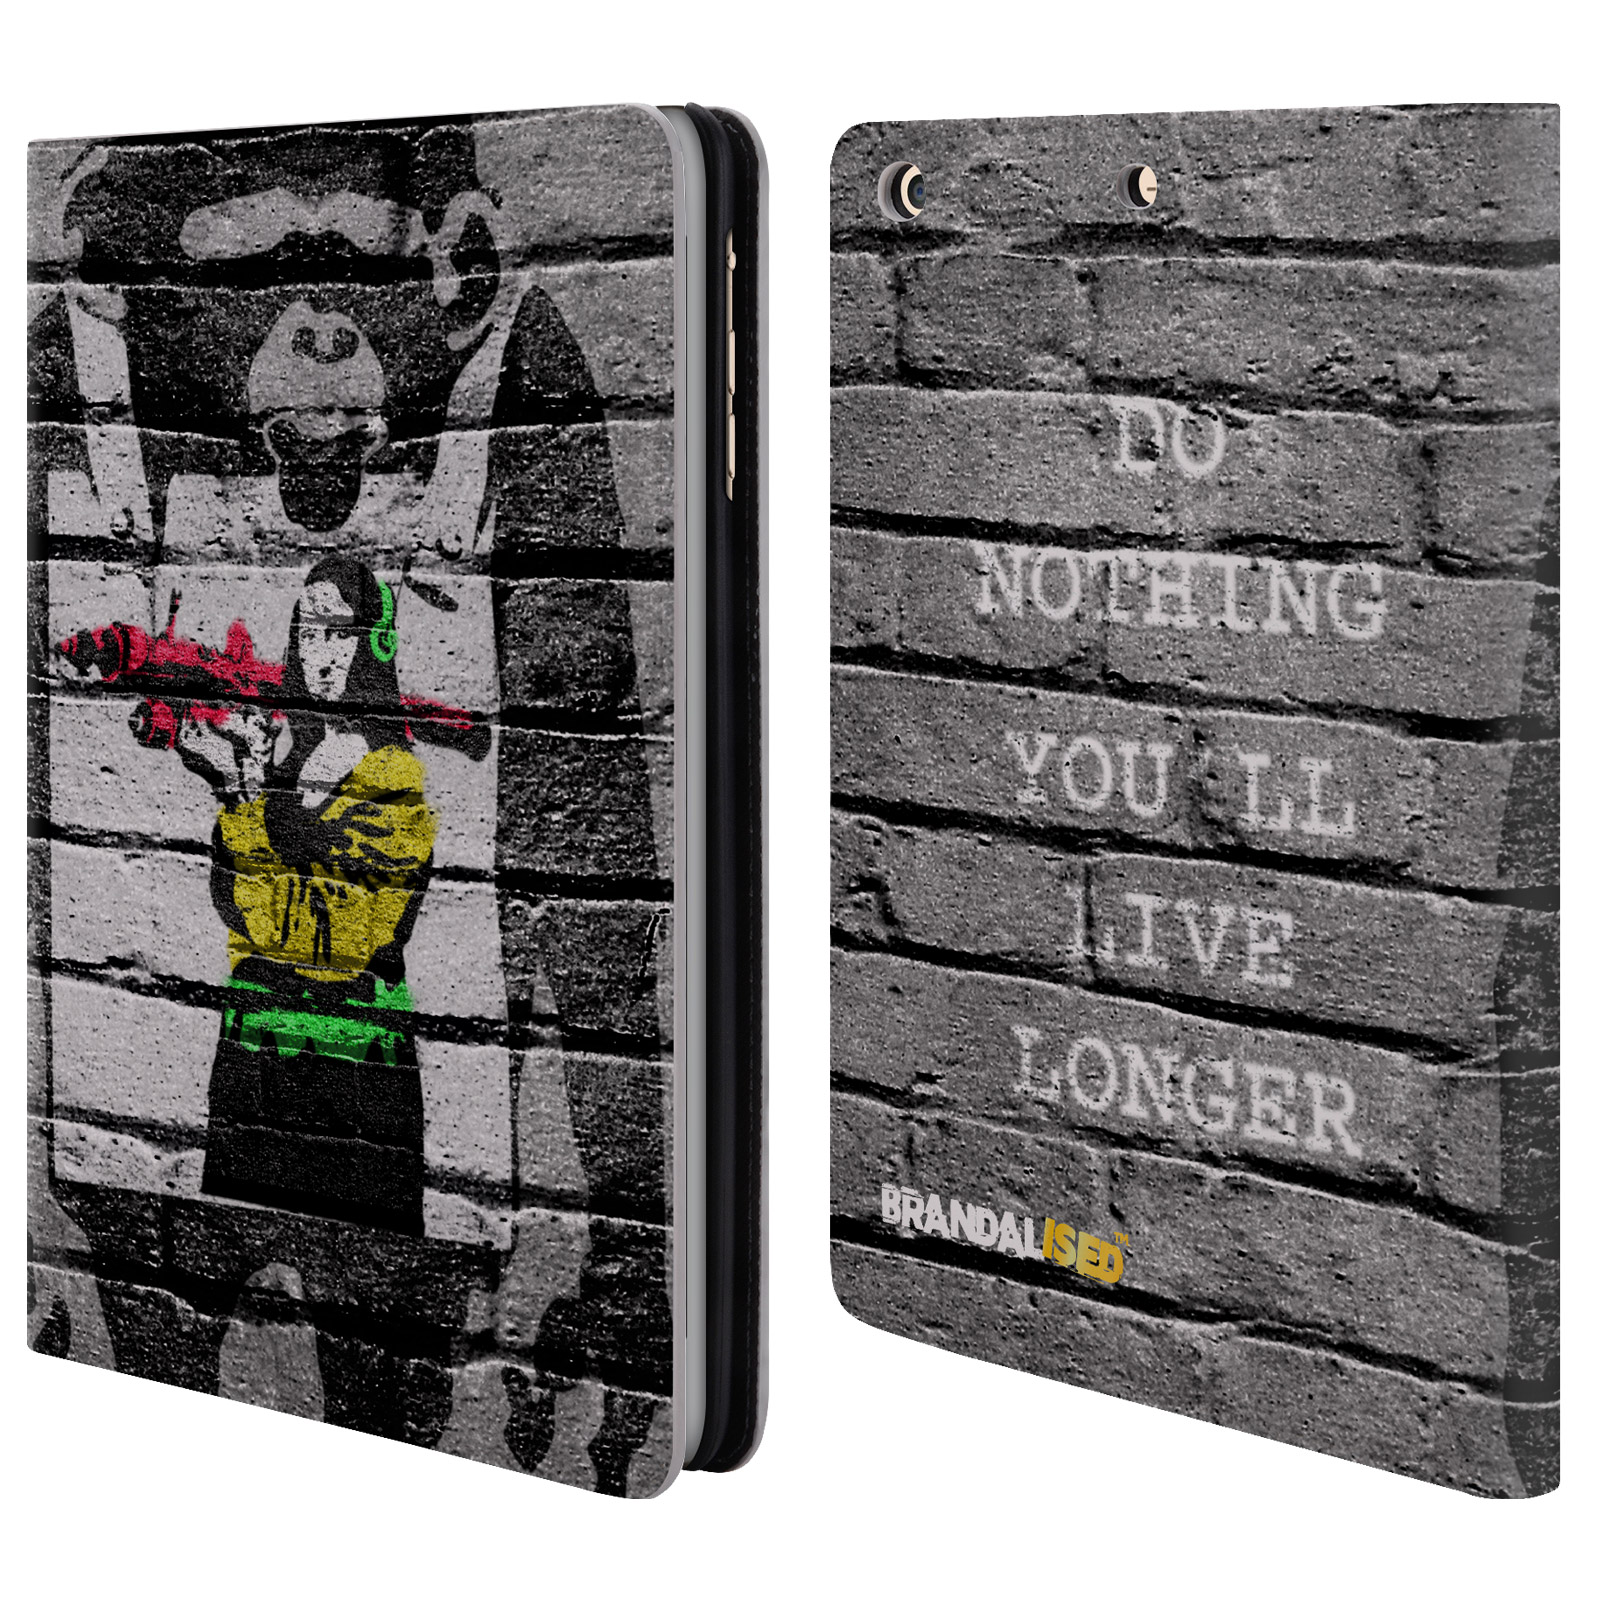 OFFICIAL BRANDALISED BANKSY COLOURED ART LEATHER BOOK WALLET CASE COVER FOR APPLE IPAD